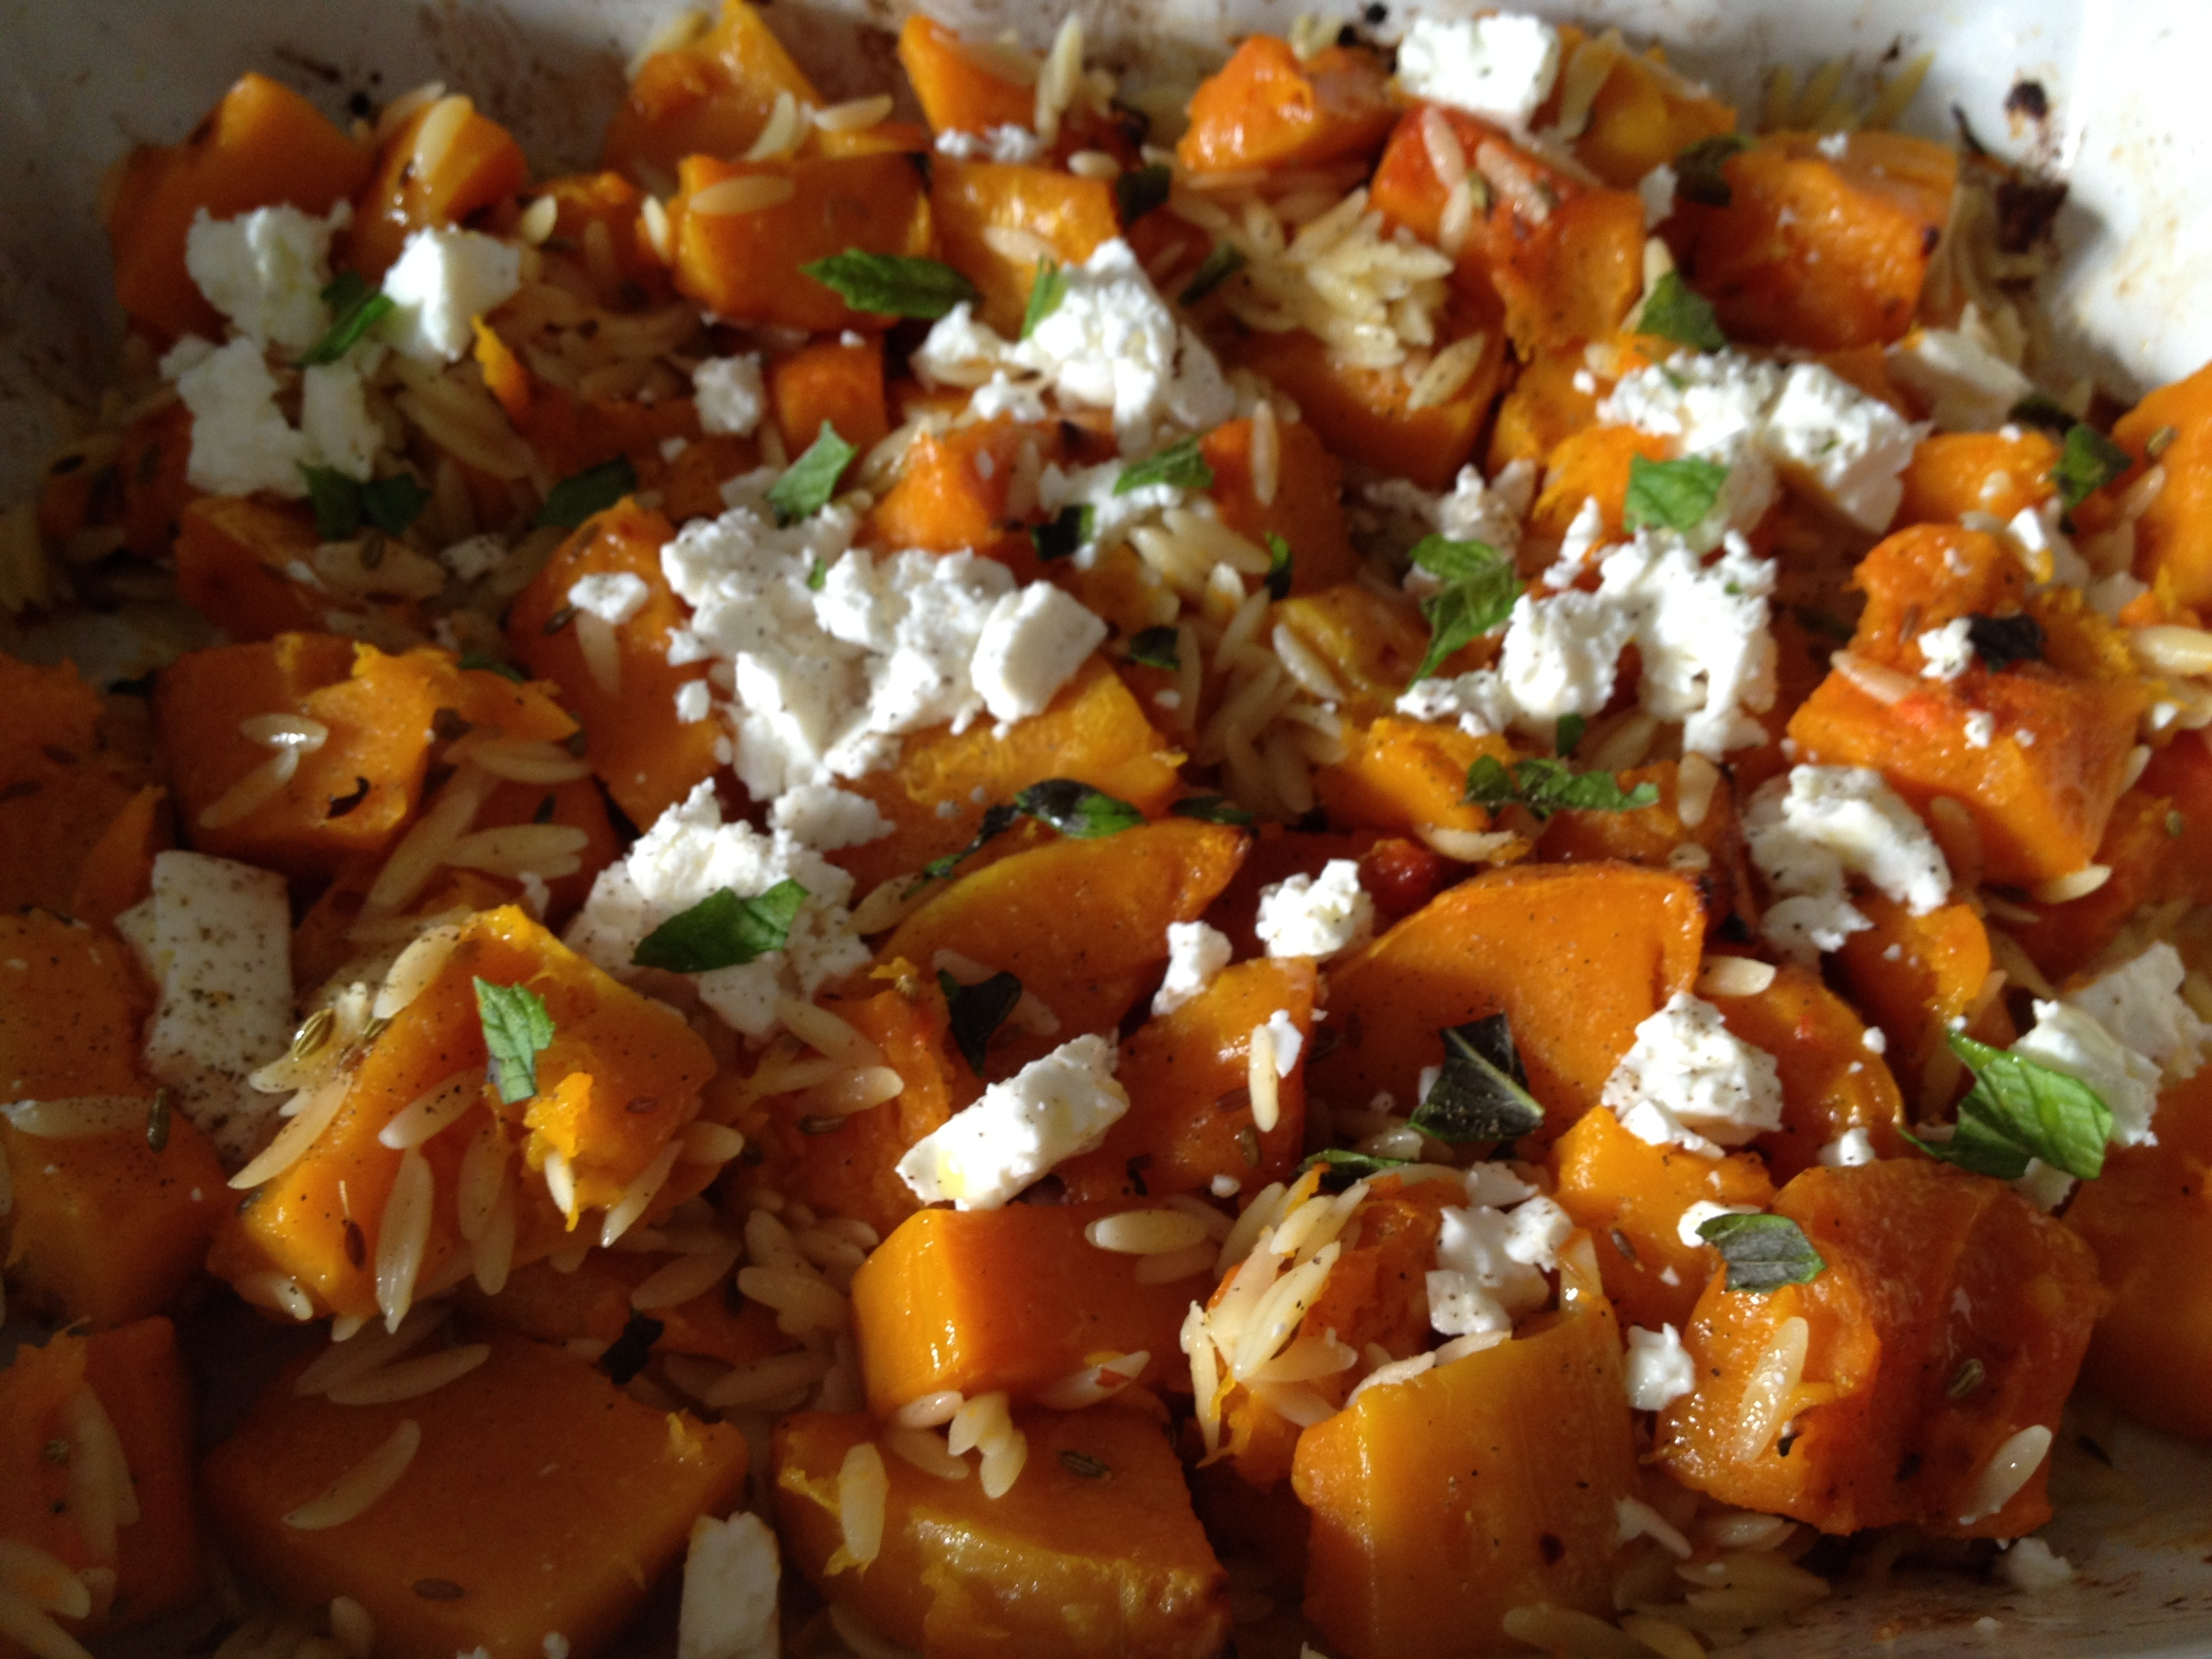 Roasted butternut squash with orzo and feta